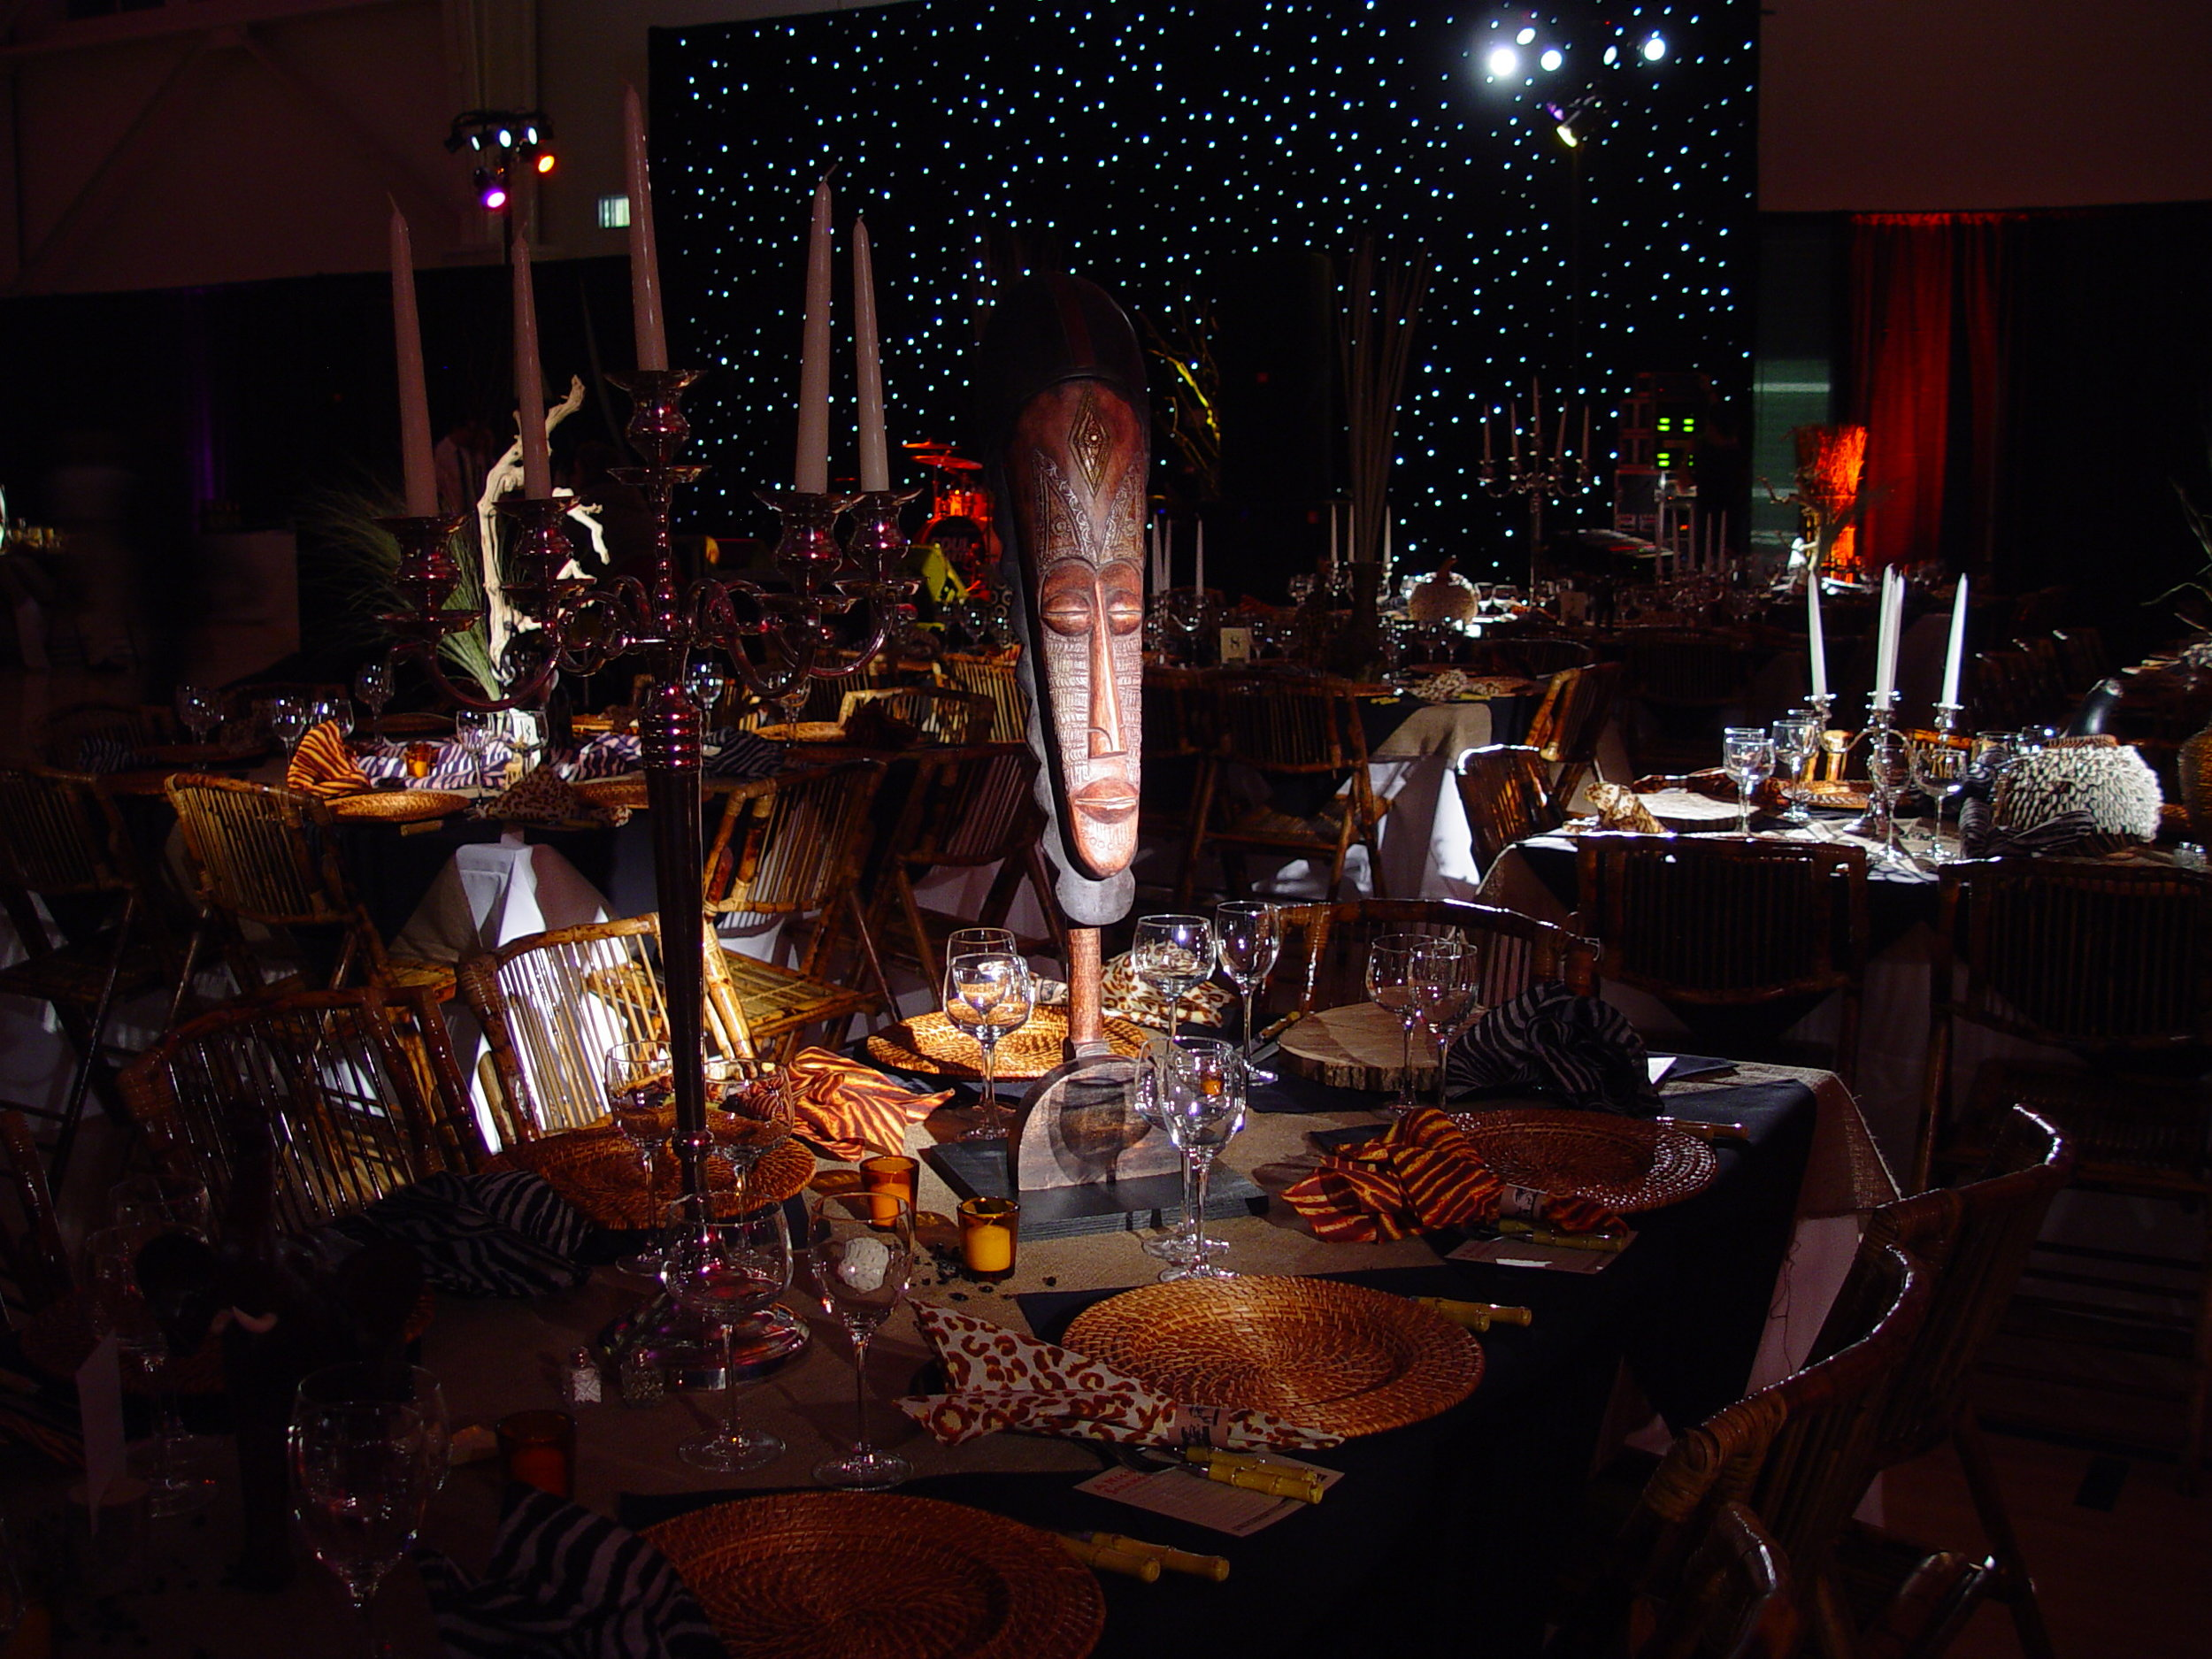 african+inspired+event+decor+centerpieces+props+lighting+international+themed+party+parties+nj+ny+pa+eggsotic+events.jpg